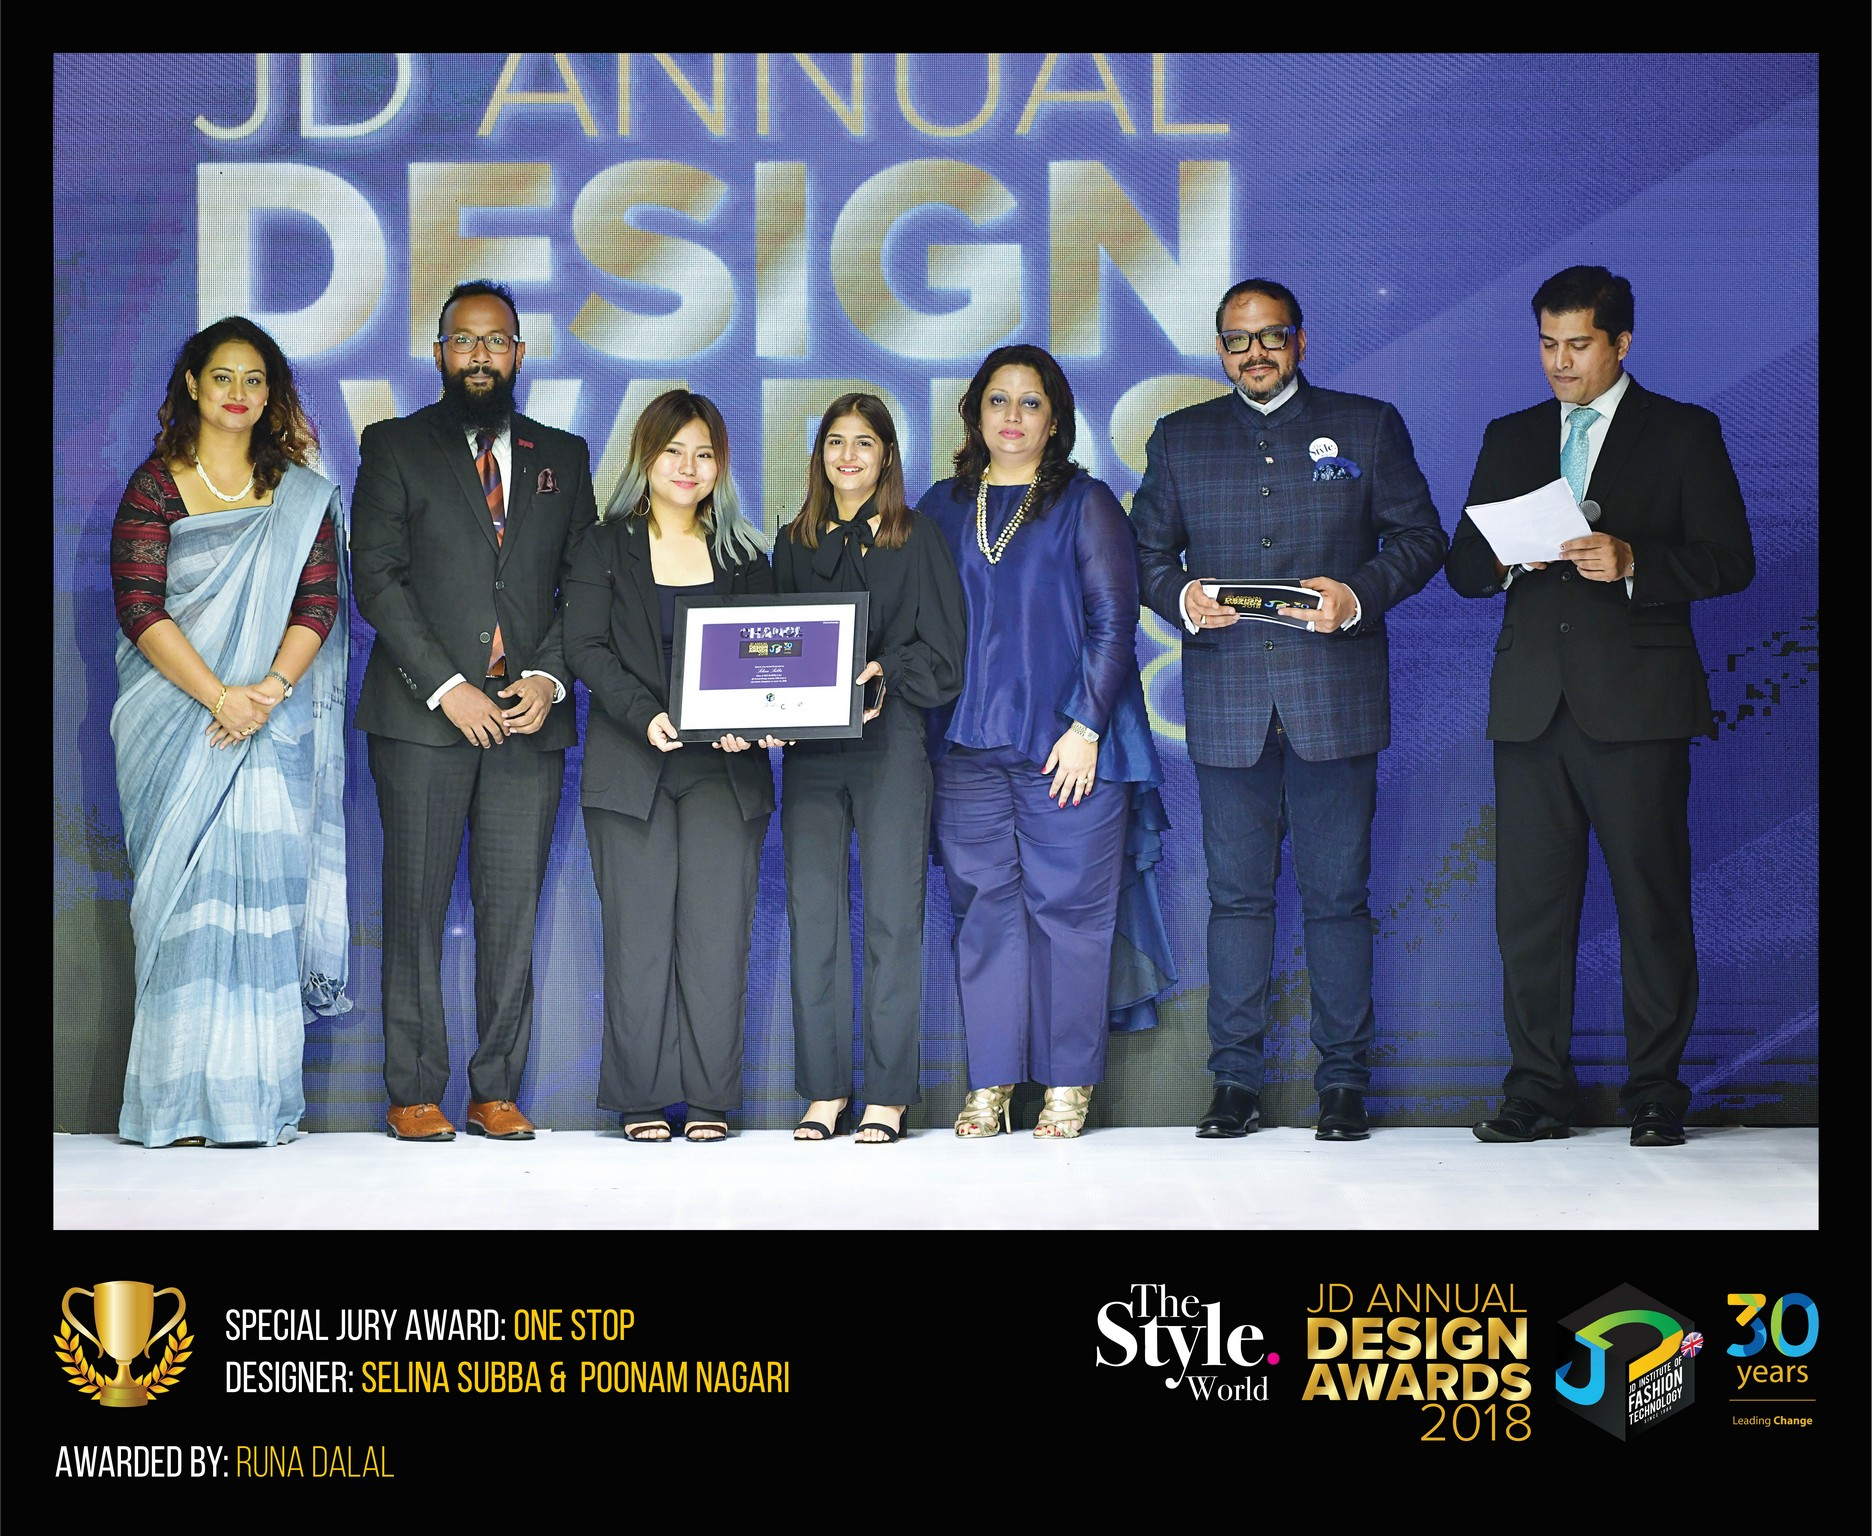 ONE STOP – CHANGE – JD ANNUAL DESIGN AWARDS 2018 | Designer: Selina and Poonam | Photography : Jerin Nath (@jerin_nath) one stop - ONE STOP final - ONE STOP – Change – JD Annual Design Awards 2018